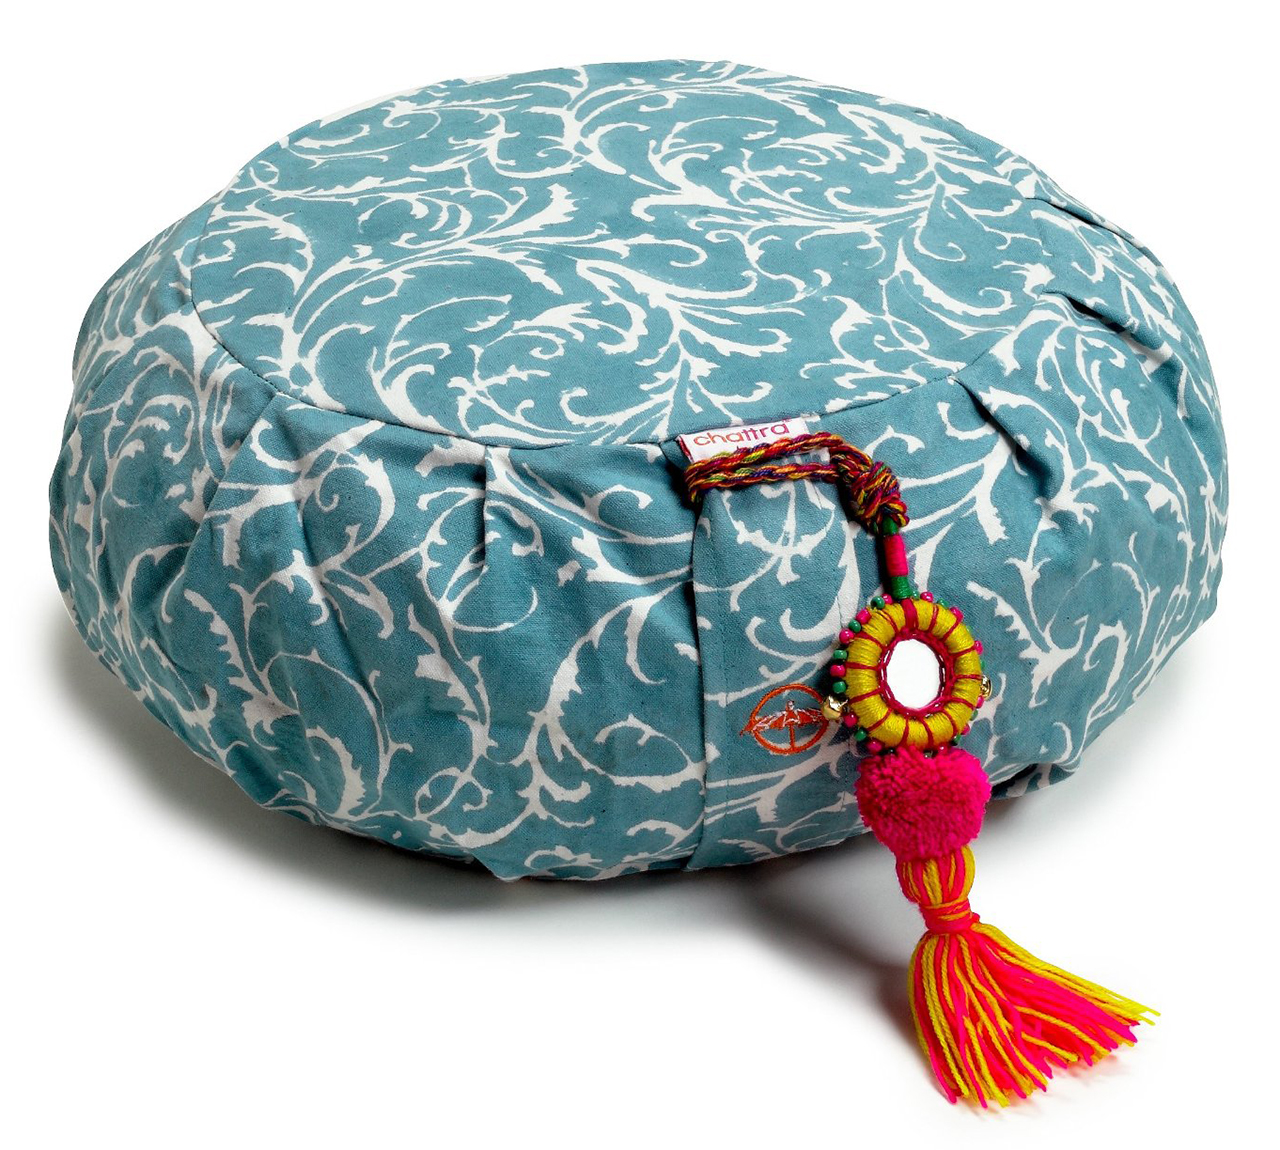 30 Best Meditation Cushions For 2019